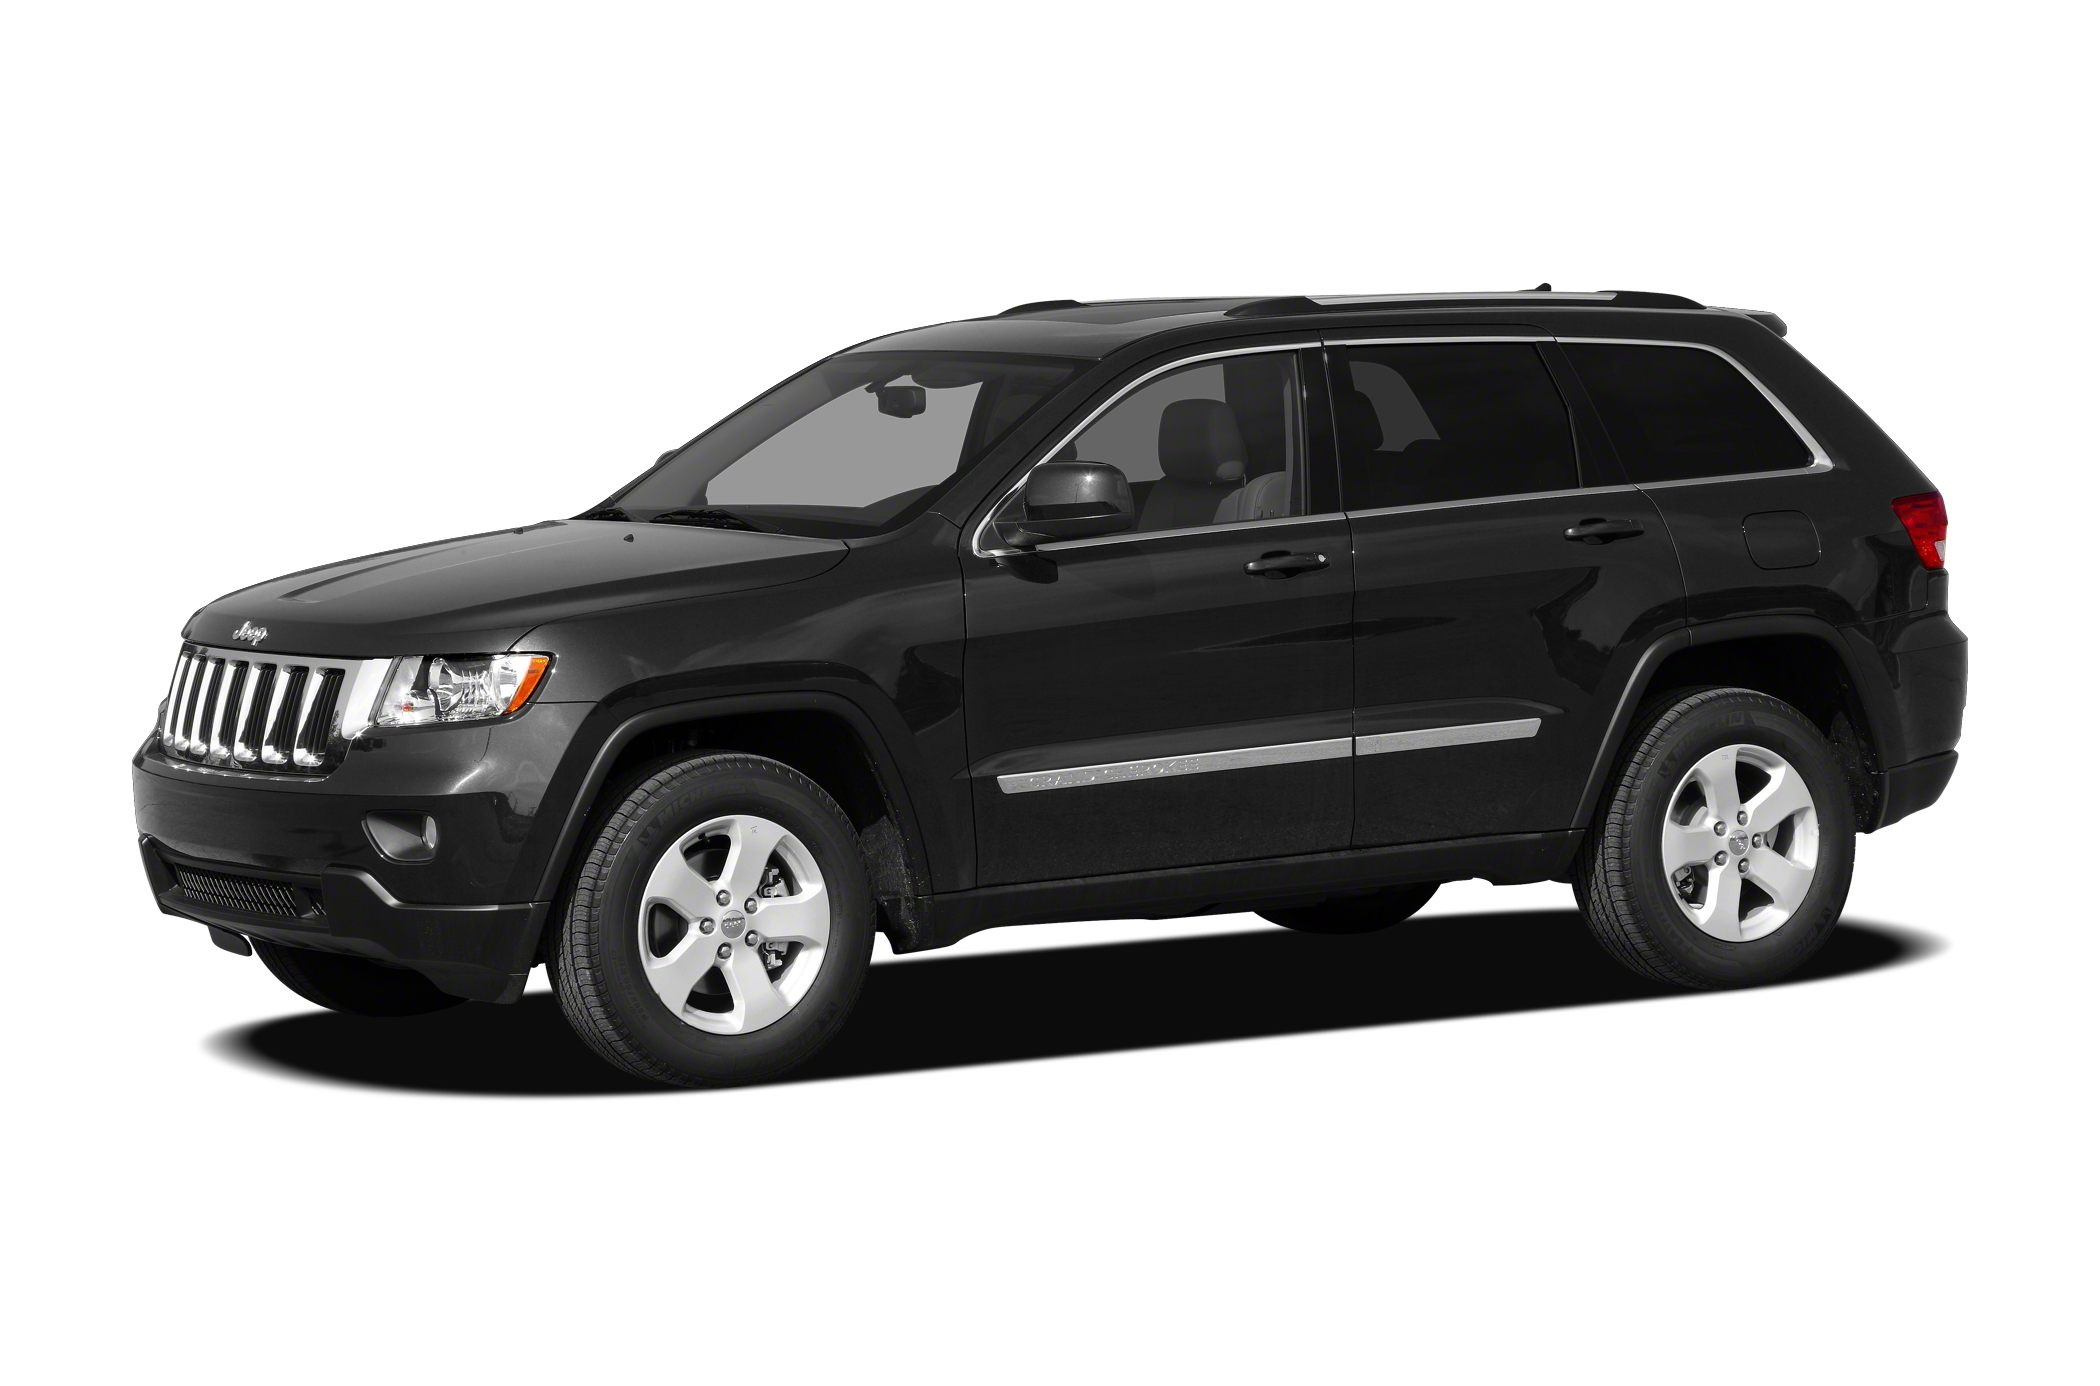 2011 Jeep Grand Cherokee Limited SUV for sale in Fredericksburg for $43,280 with 0 miles.